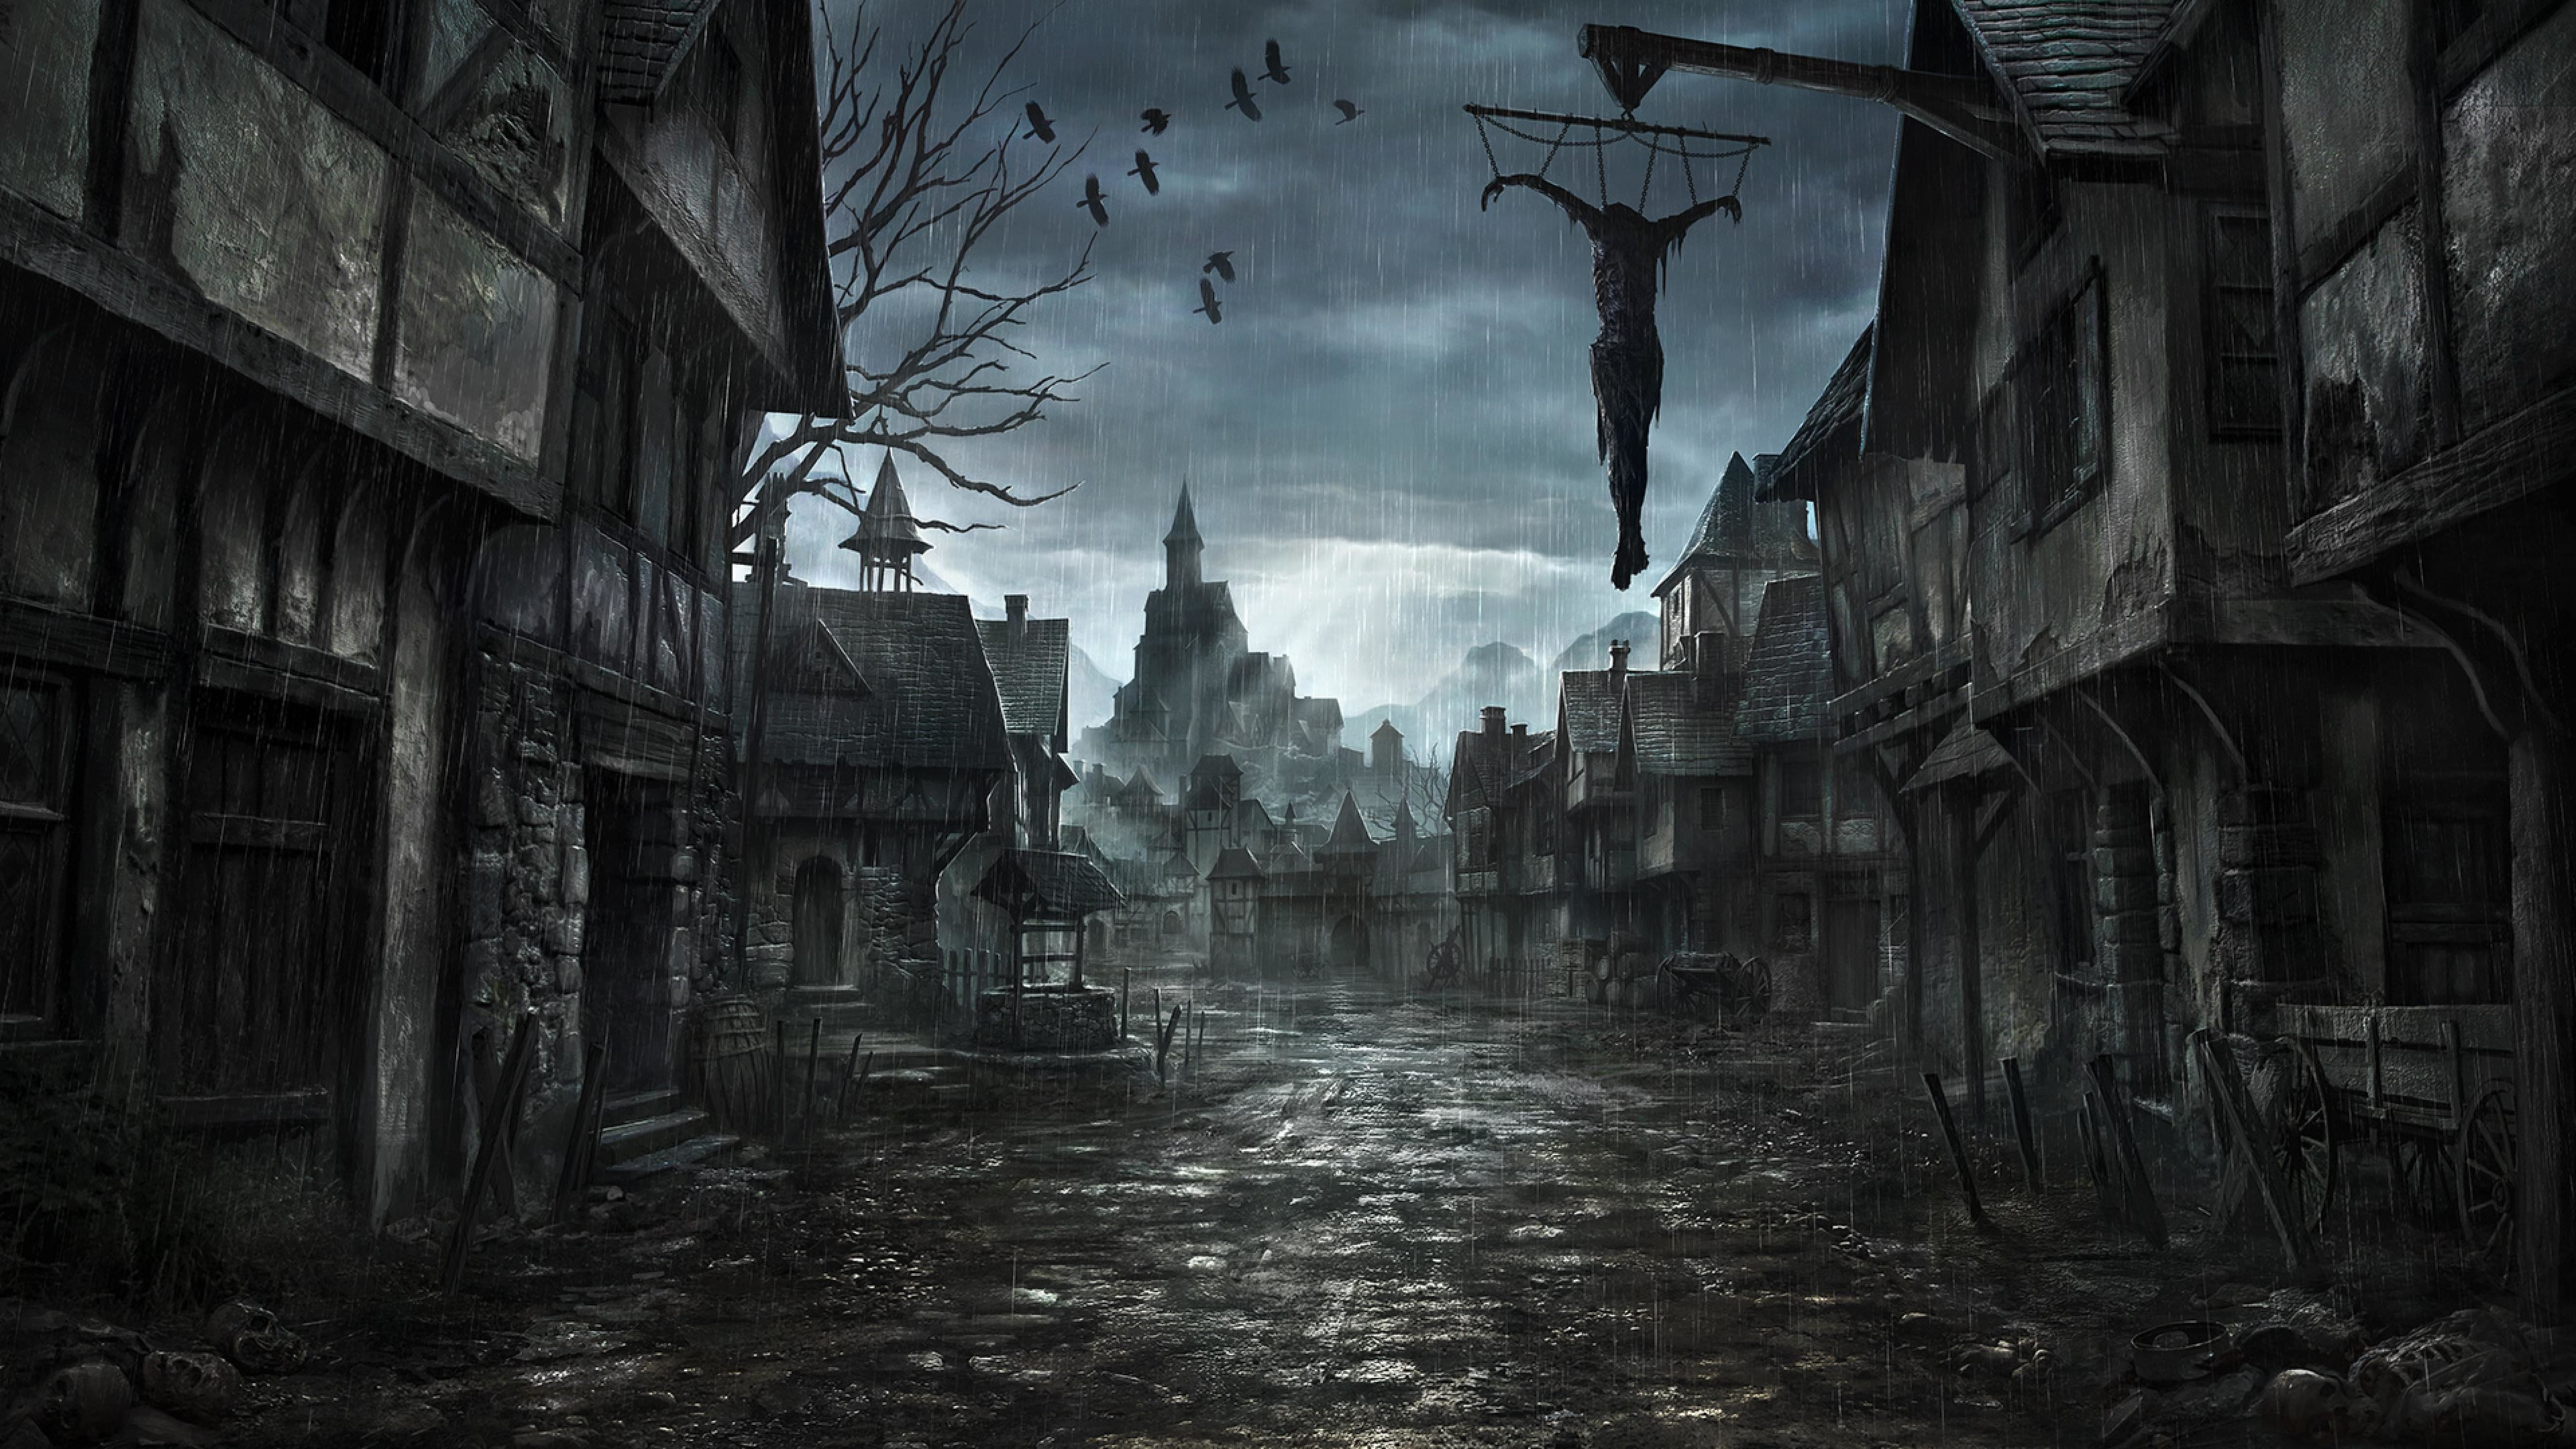 Res: 3840x2160, Painting, Darkness, Dark Fantasy, Capital City, Fantasy World HD Wallpaper,  City Picture, Background and Image